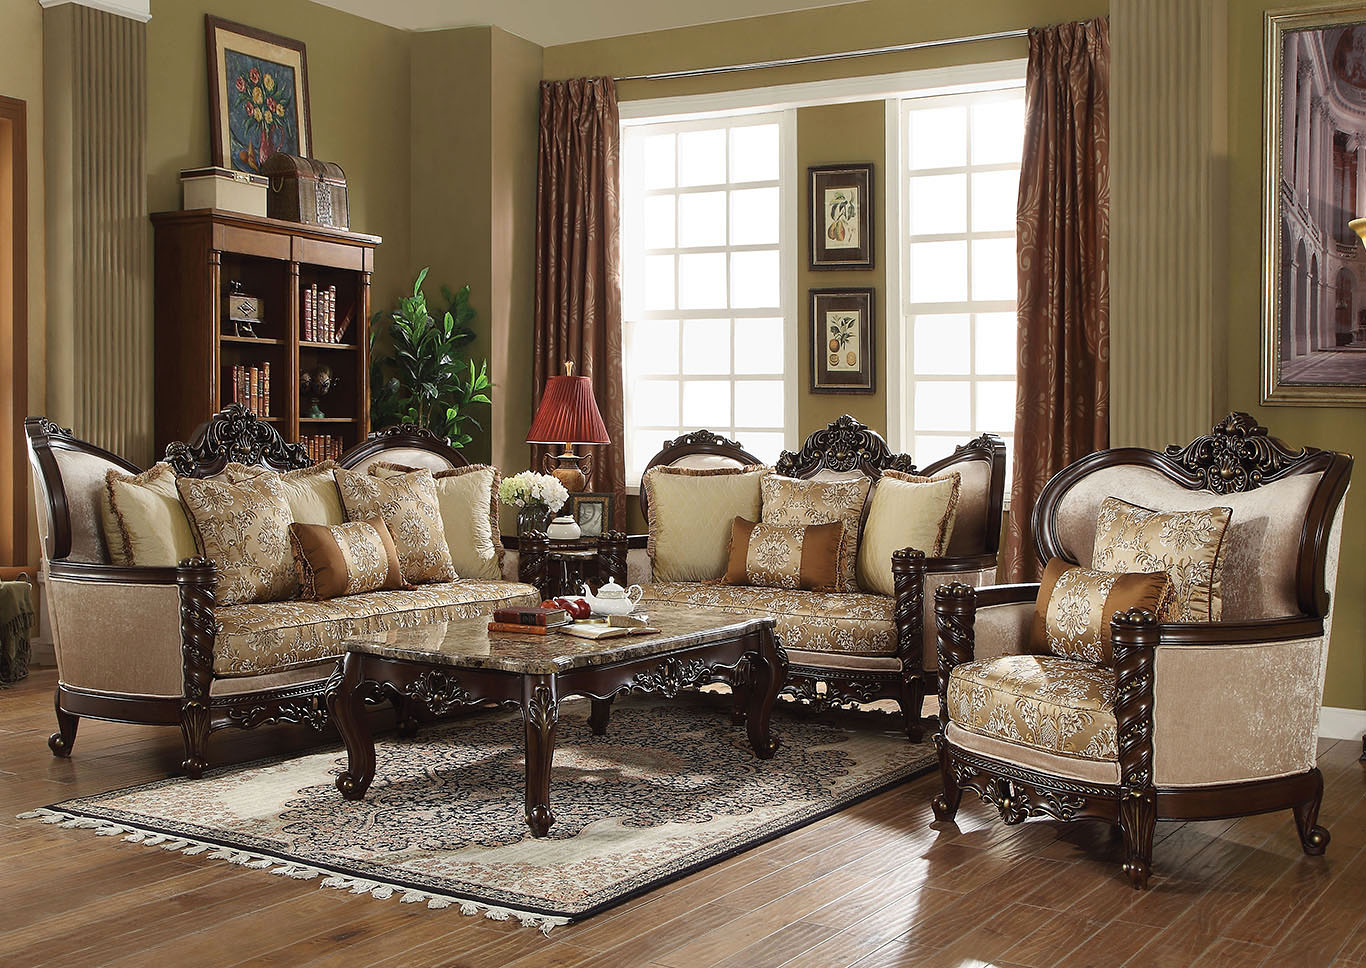 Devayne Cultured Pearl Loveseat,Acme